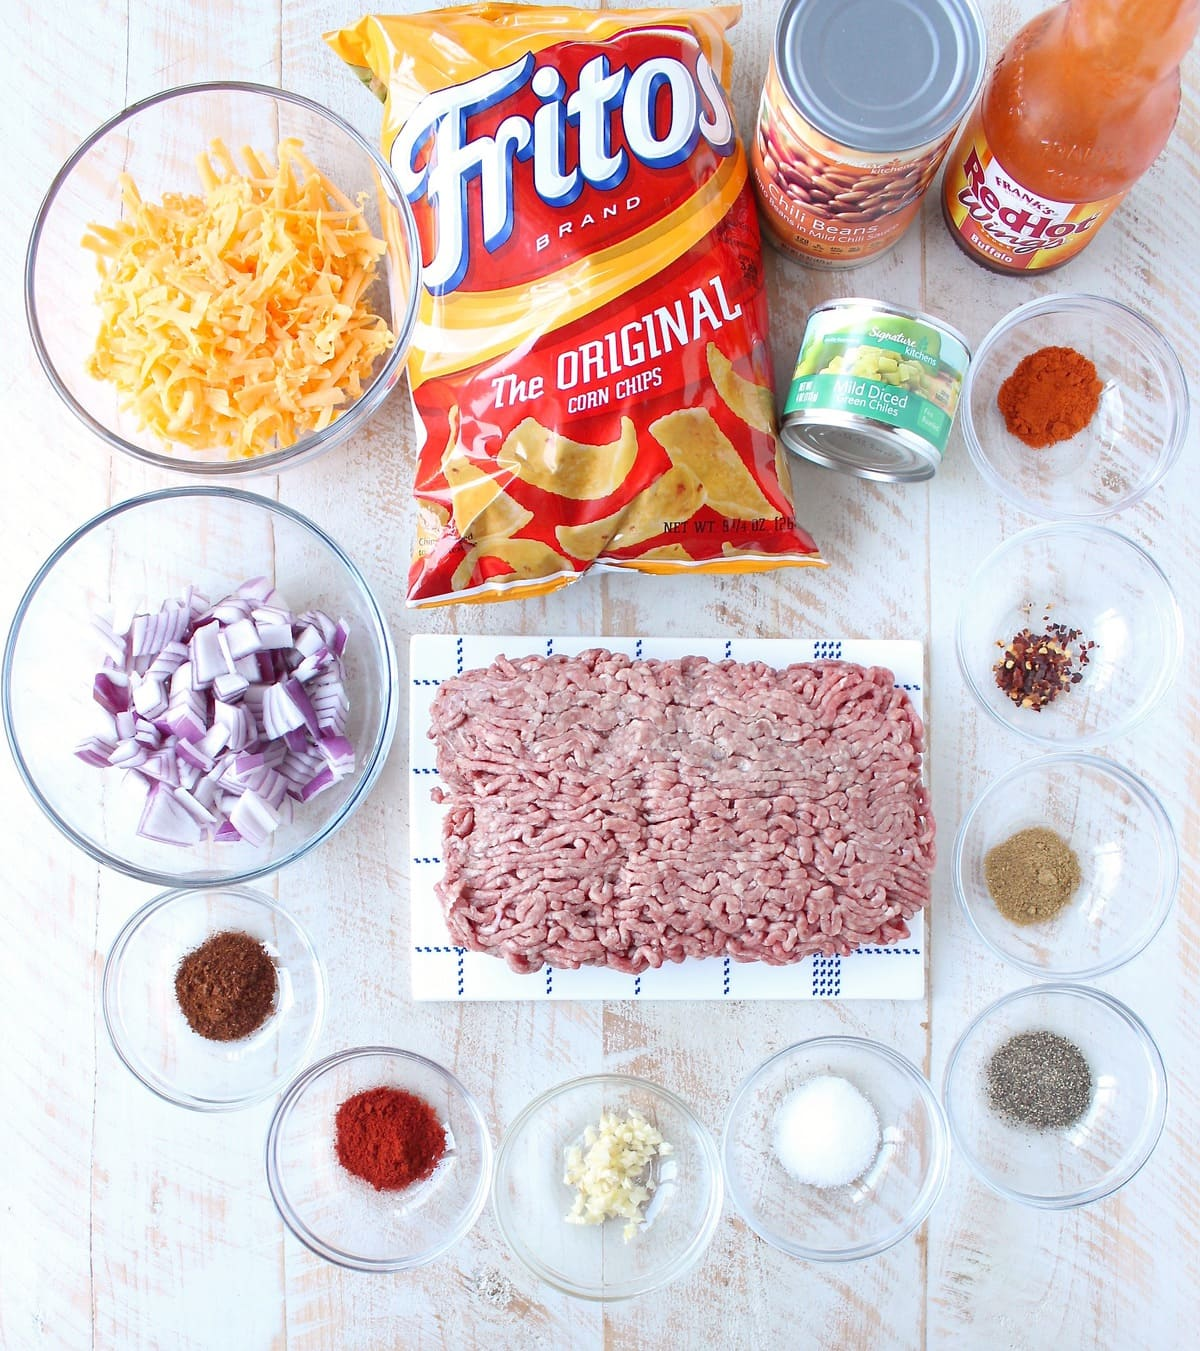 Frito Chili Pie is given a spicy kick with the addition of buffalo sauce, green chilies and spices in this delicious twist on a classic recipe, easy to make in only 20 minutes!